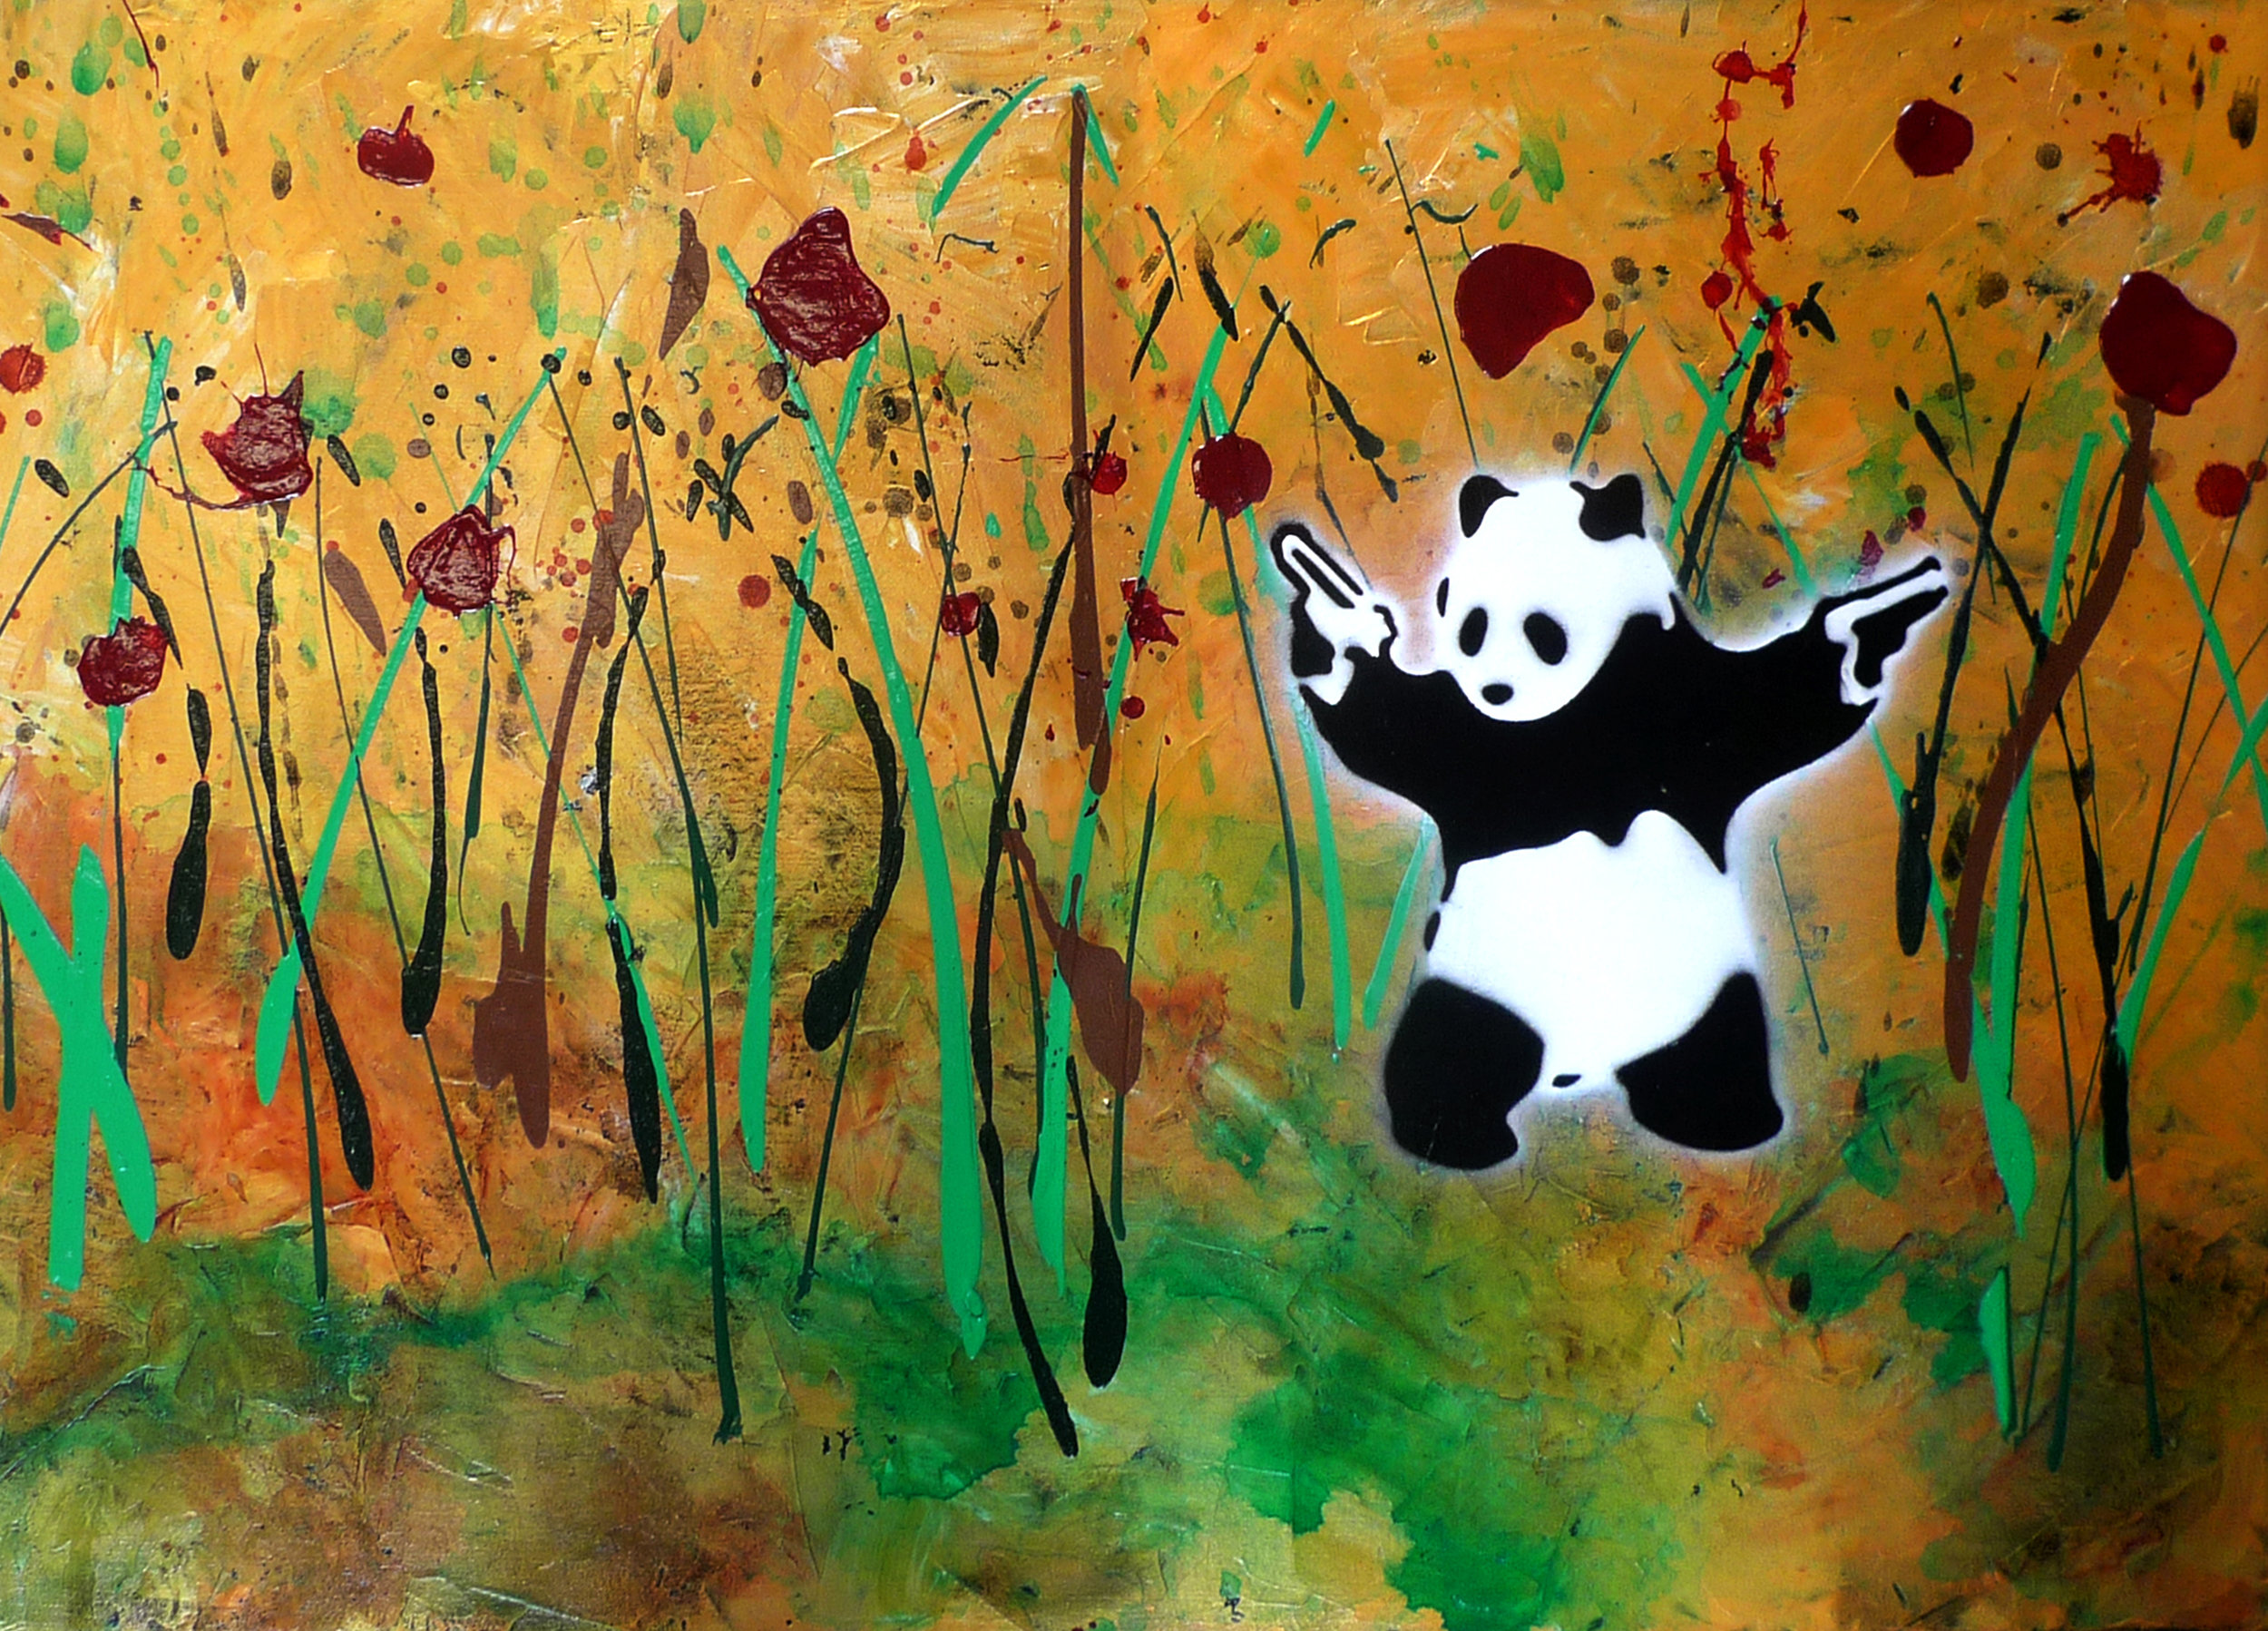 [Detail View] Abstract Landscape with Yakuza Panda